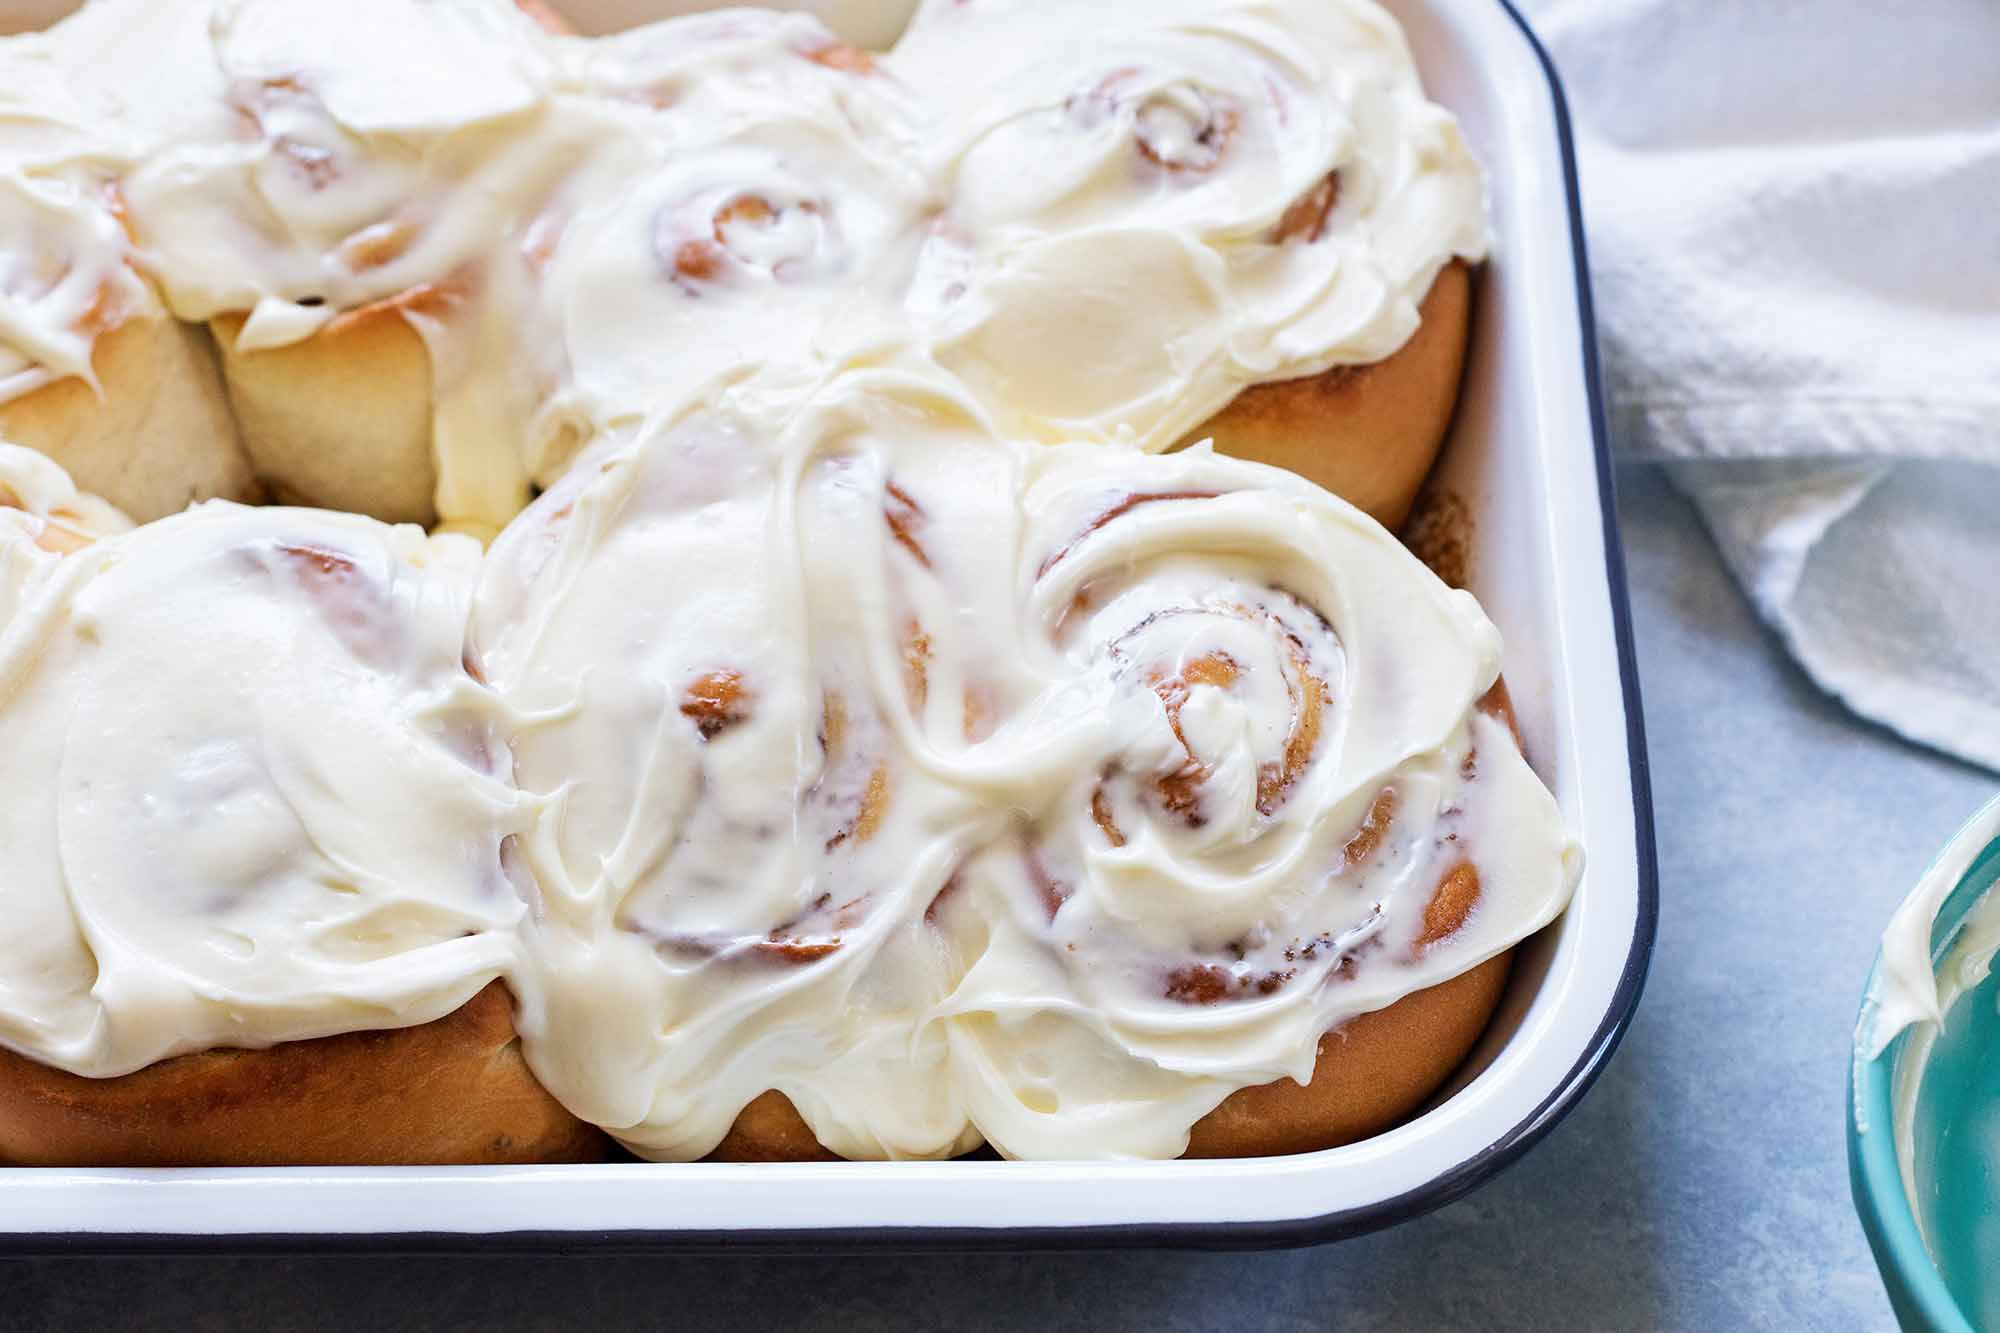 Homemade Cinnamon Rolls topped with cream cheese frosting